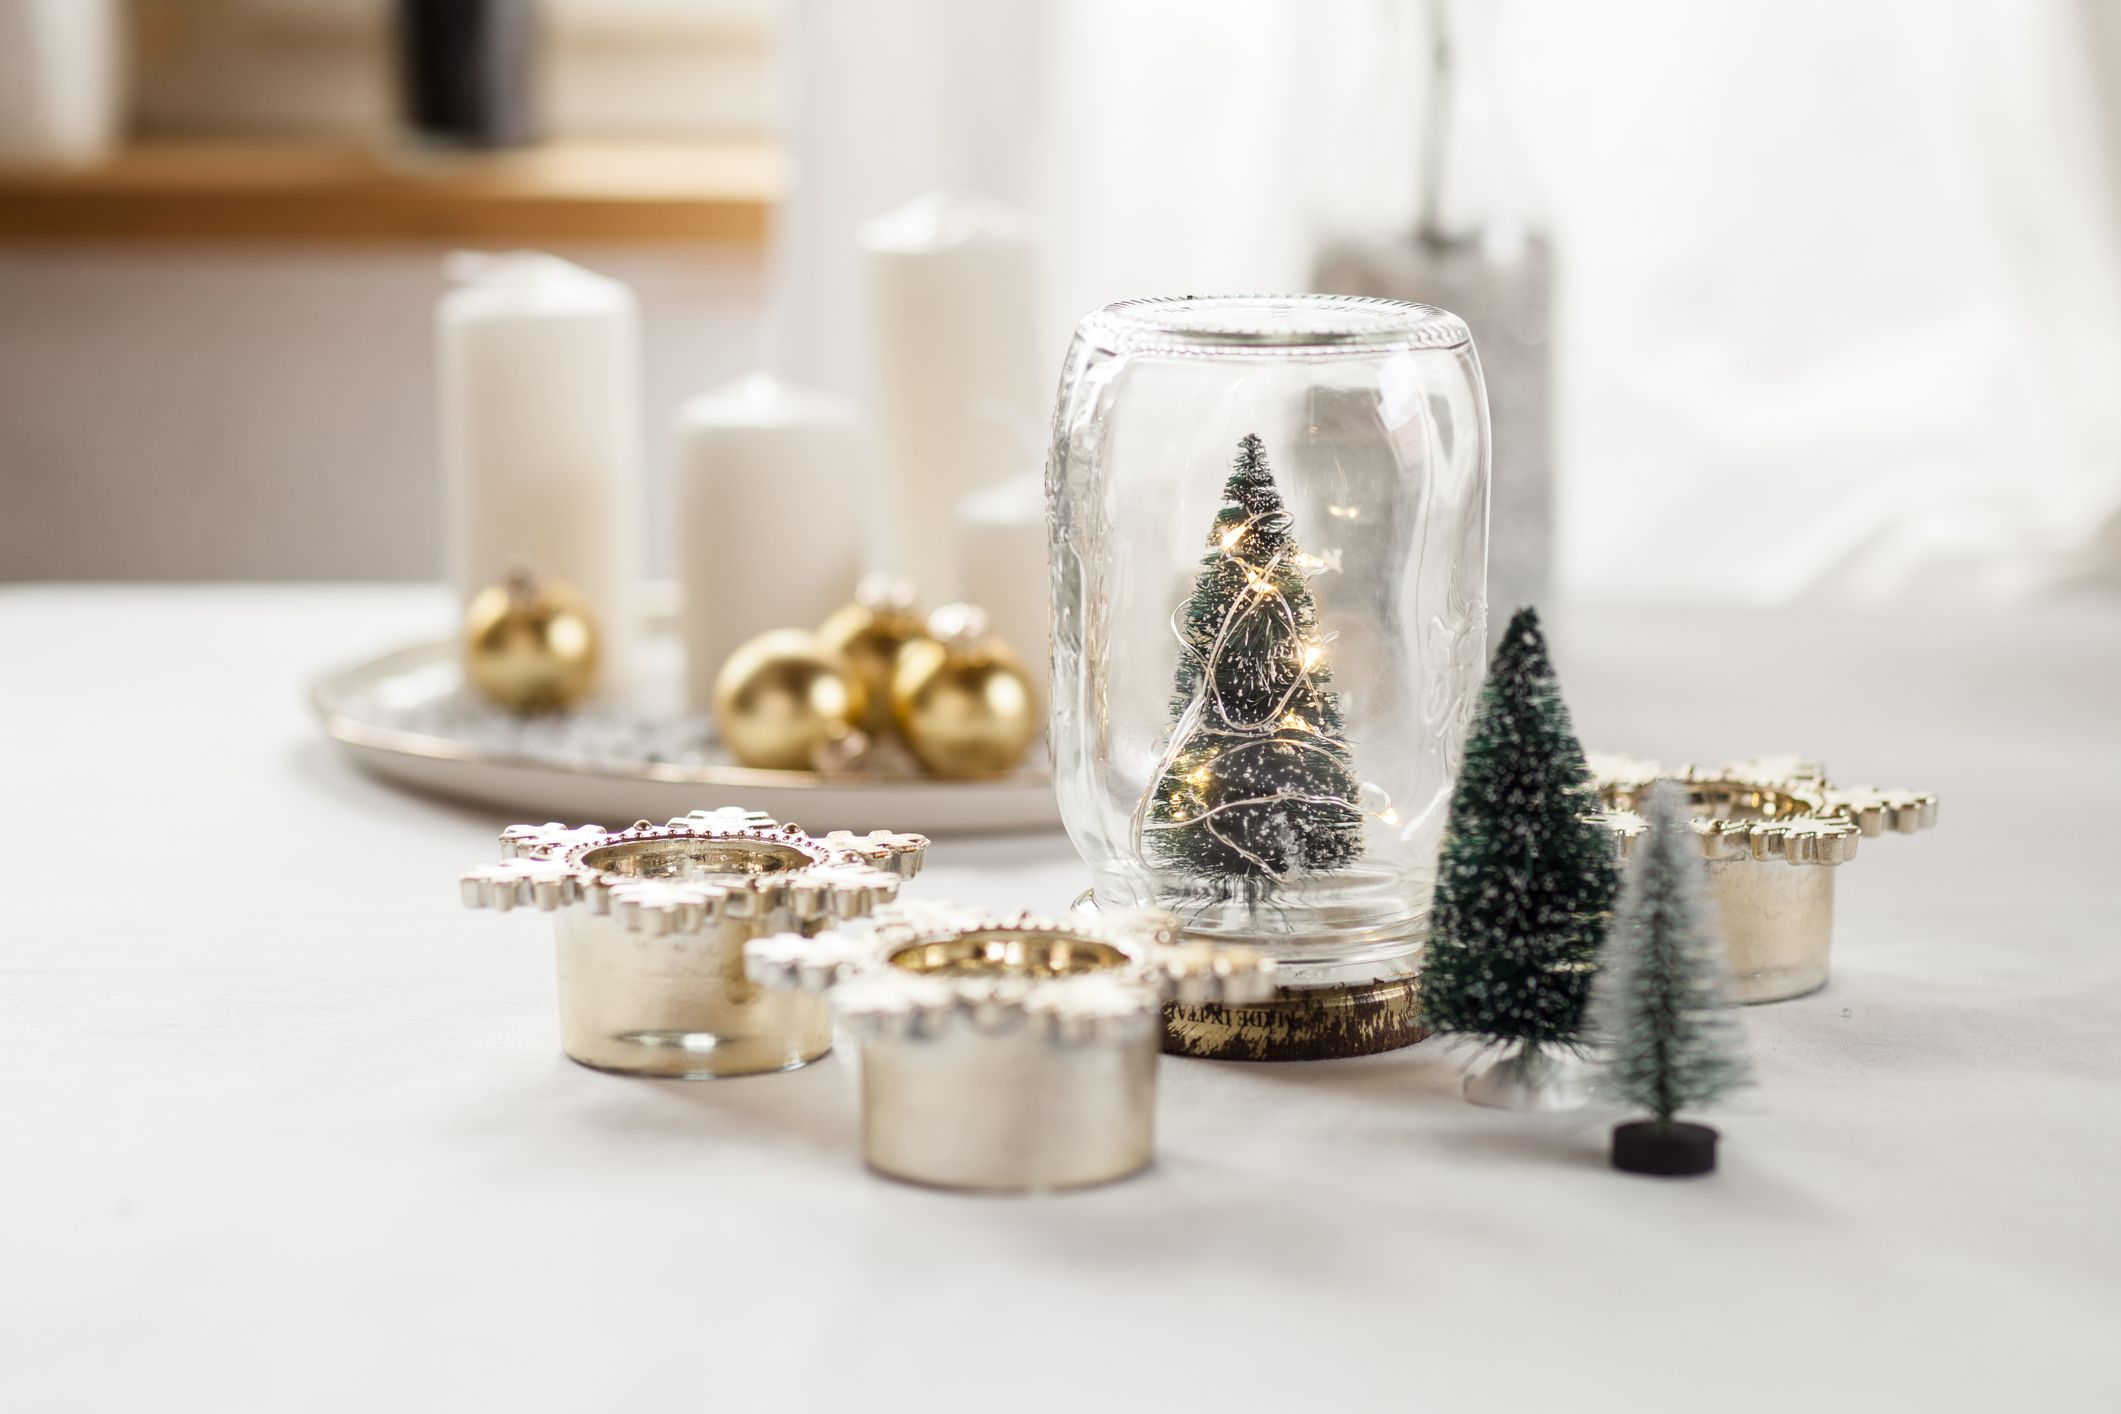 30 x Prices White Household Candles Decorative Christmas